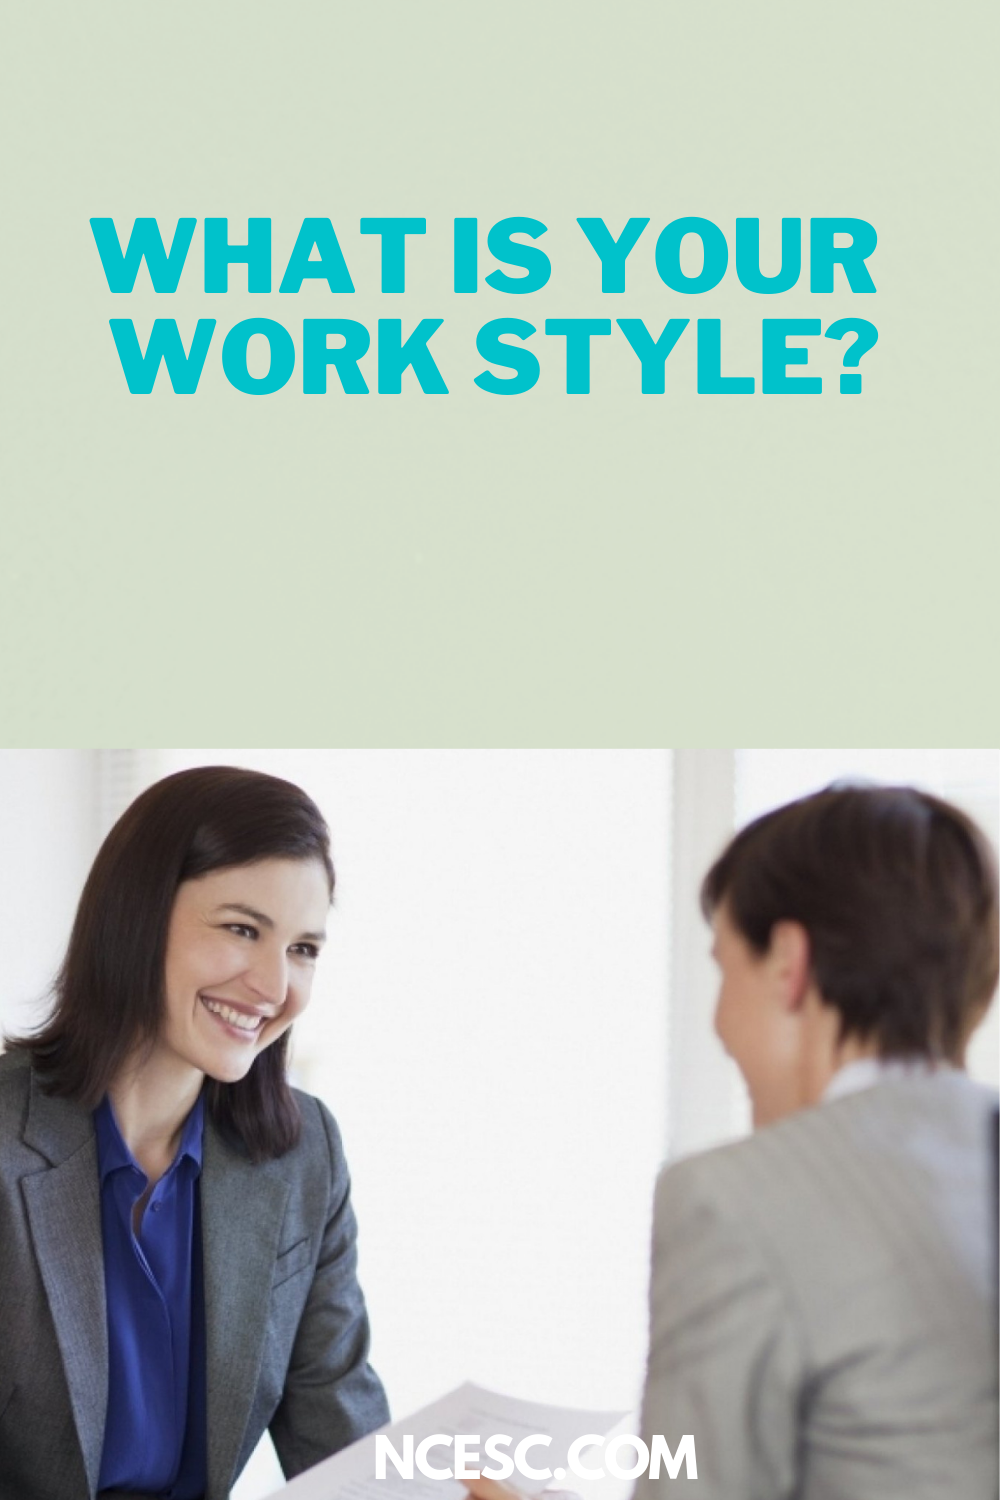 what is your work style anser